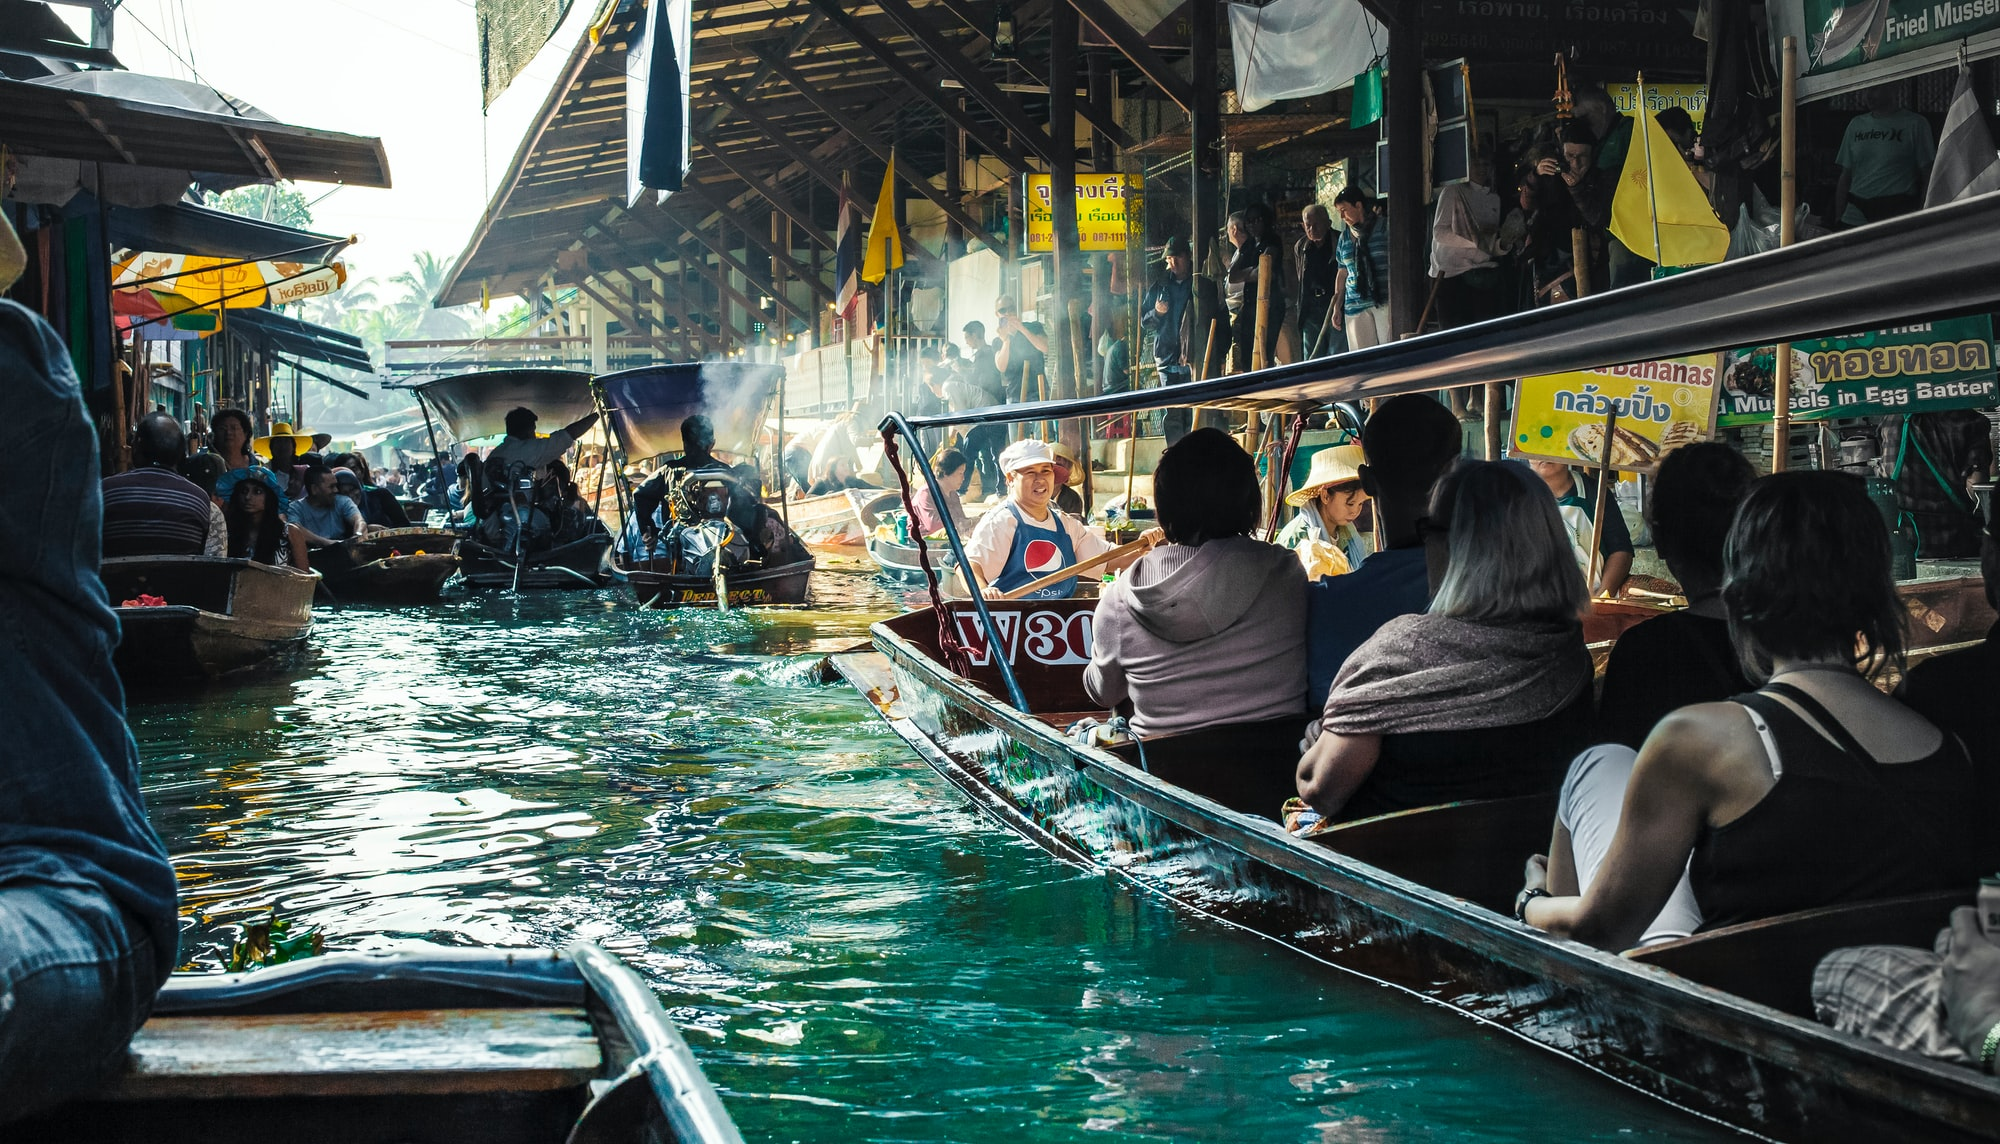 The Damnoen Saduak floating market is a more authentic floating marketing outside of Bangkok that has countless narrow canals, fragrances of spices and flavors washing over you moment after moment, fresh fruits piled high upon on rafts, and a raw experience that truly takes you as far away from what a market experience usually is.